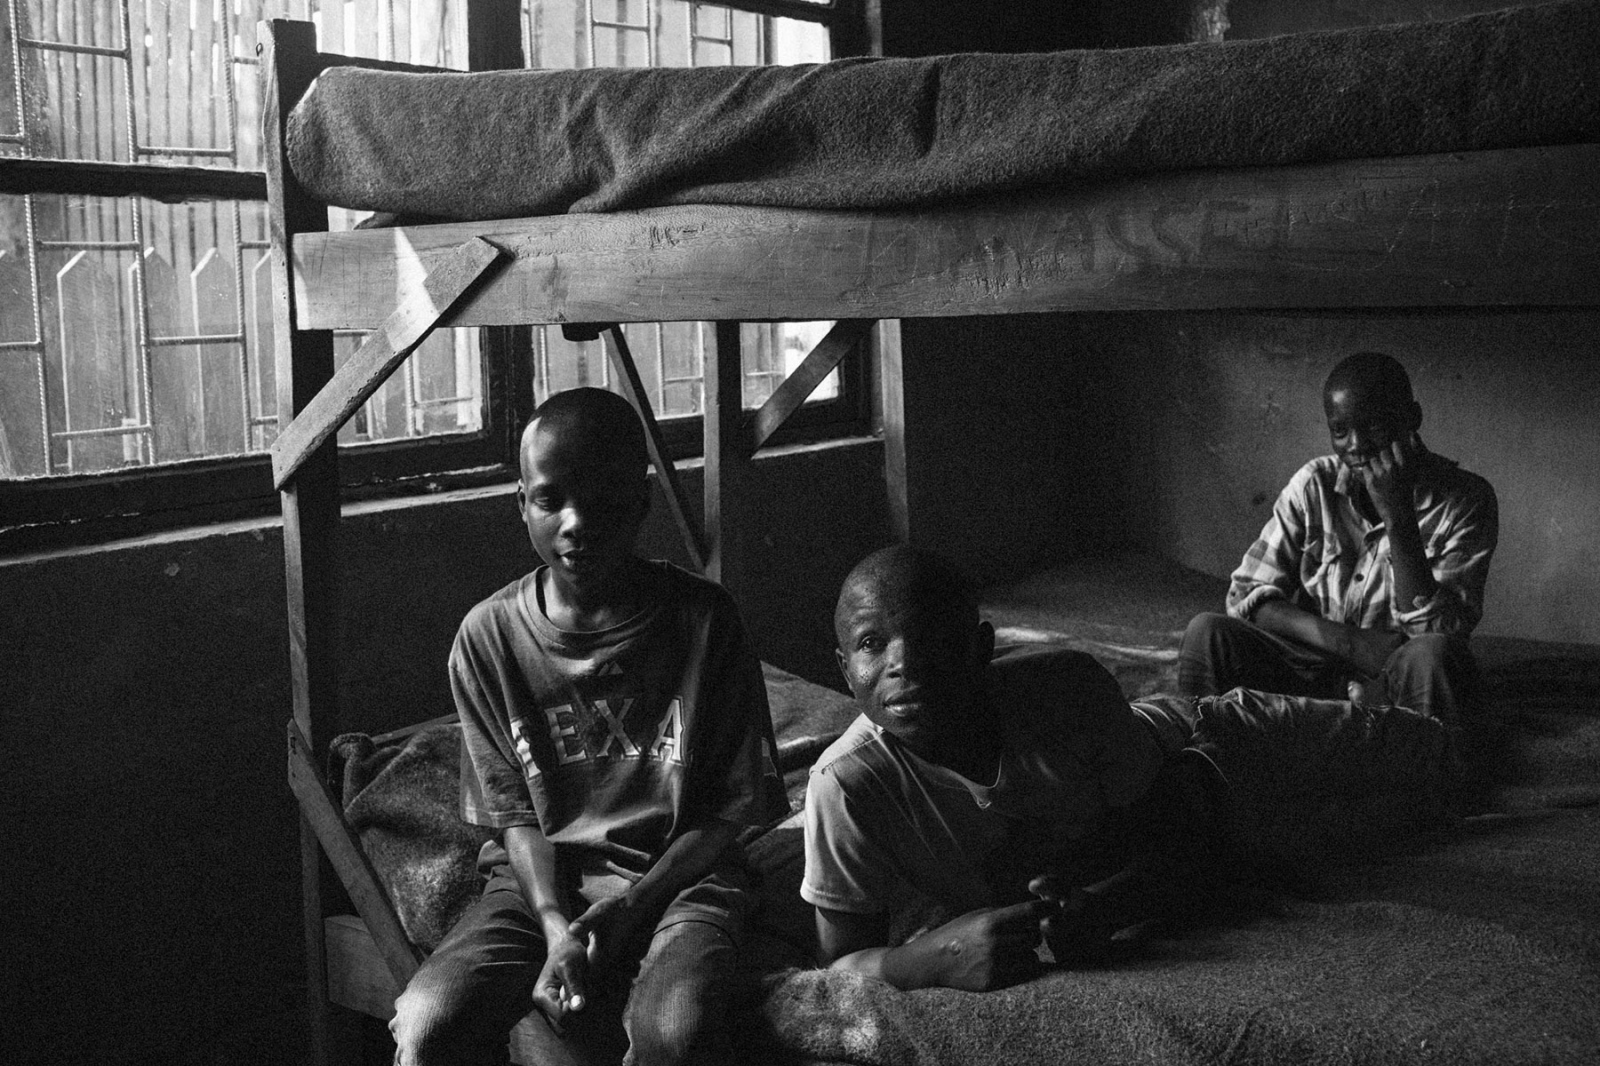 Paterne, 14, Josue, 14, and Yamankai, 16, sit on bunk beds in the BVES transit center in Bukavu, Eastern DRC, on Friday, July 25, 2014. All three are former child soldiers in various militia groups in the east of the country, and are currently awaiting reintegration.